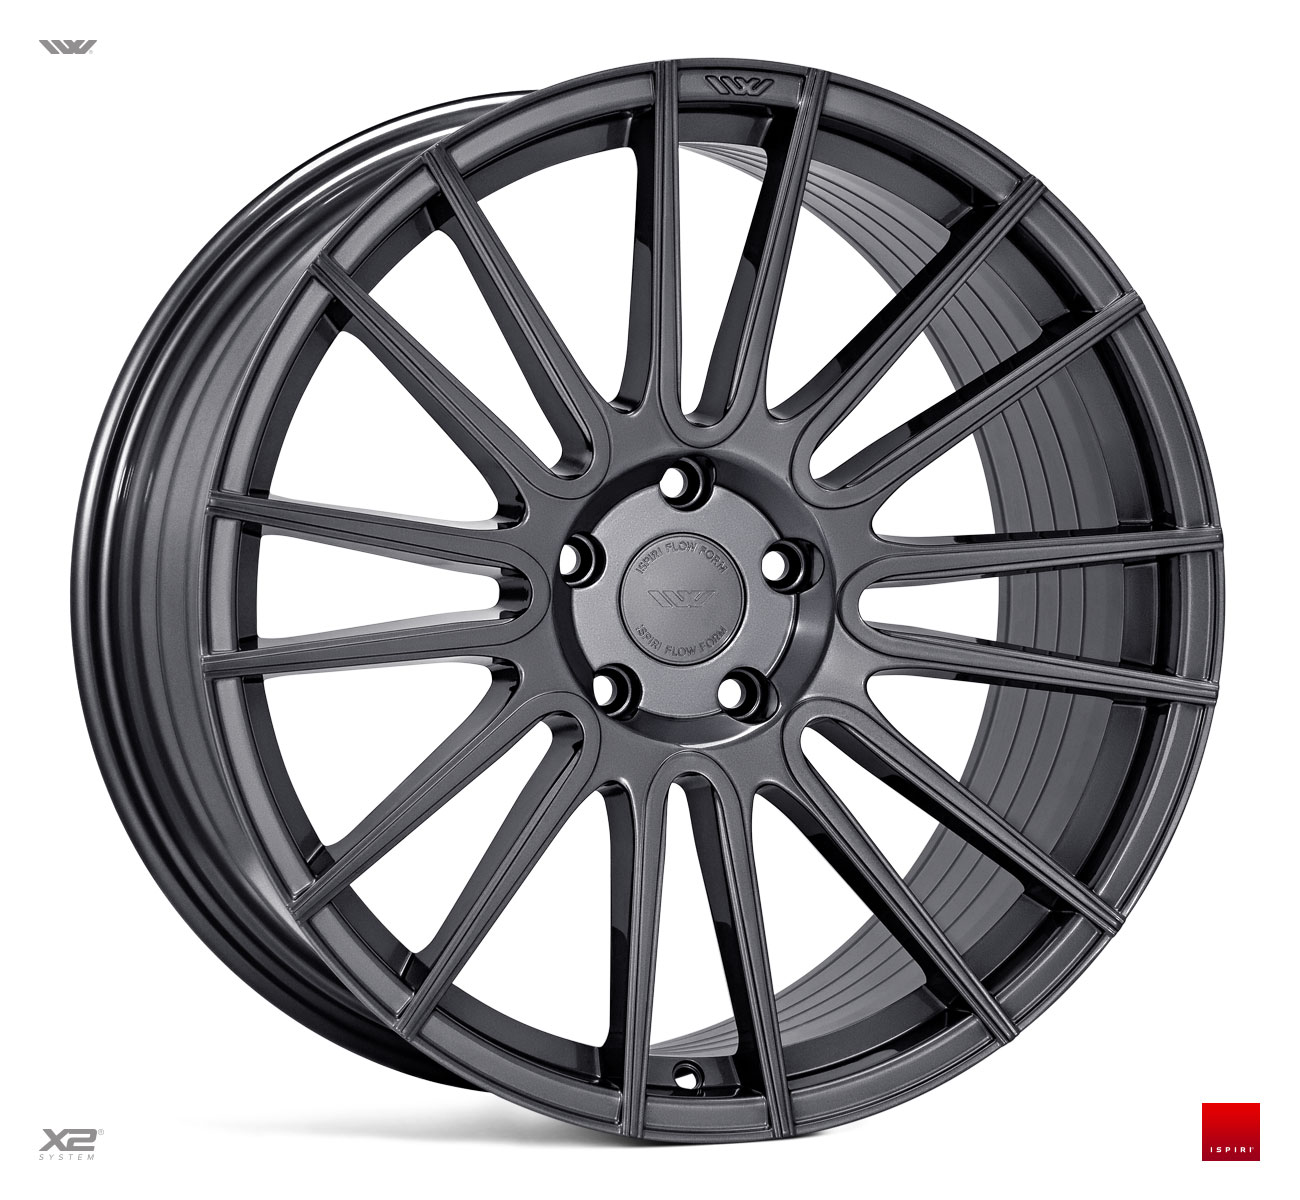 "NEW 20"" ISPIRI FFR8 8-TWIN CURVED SPOKE ALLOY WHEELS IN CARBON GRAPHITE, WIDER 10"" REARS"